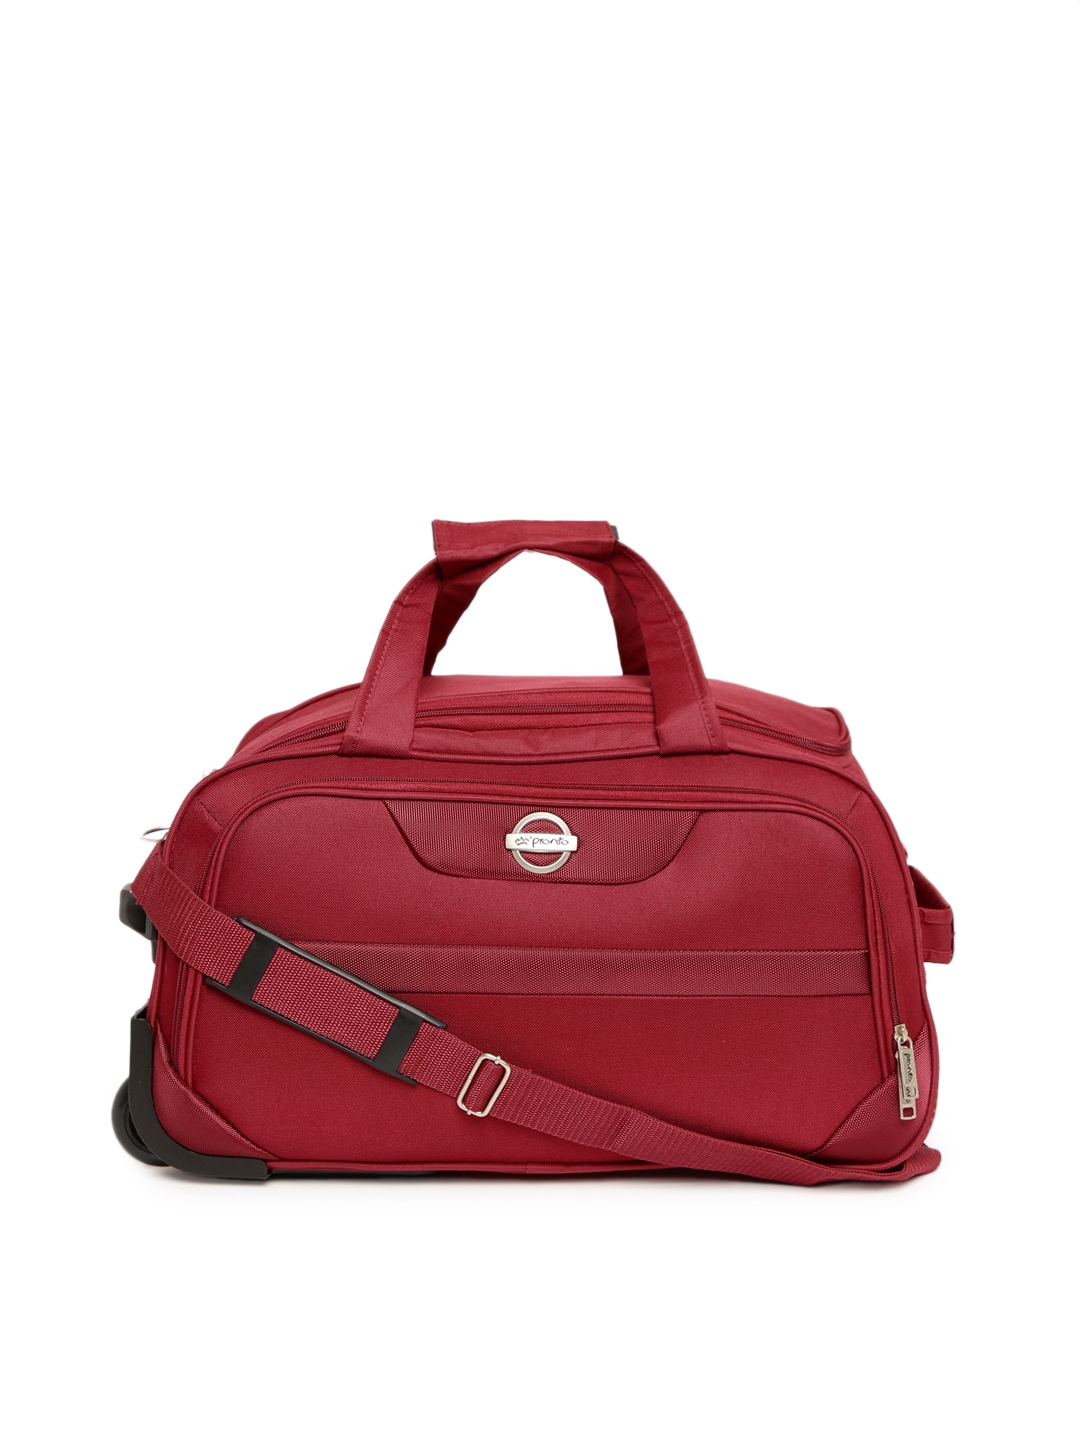 Red Bags - Buy Red Bags online in India c282b053e6551